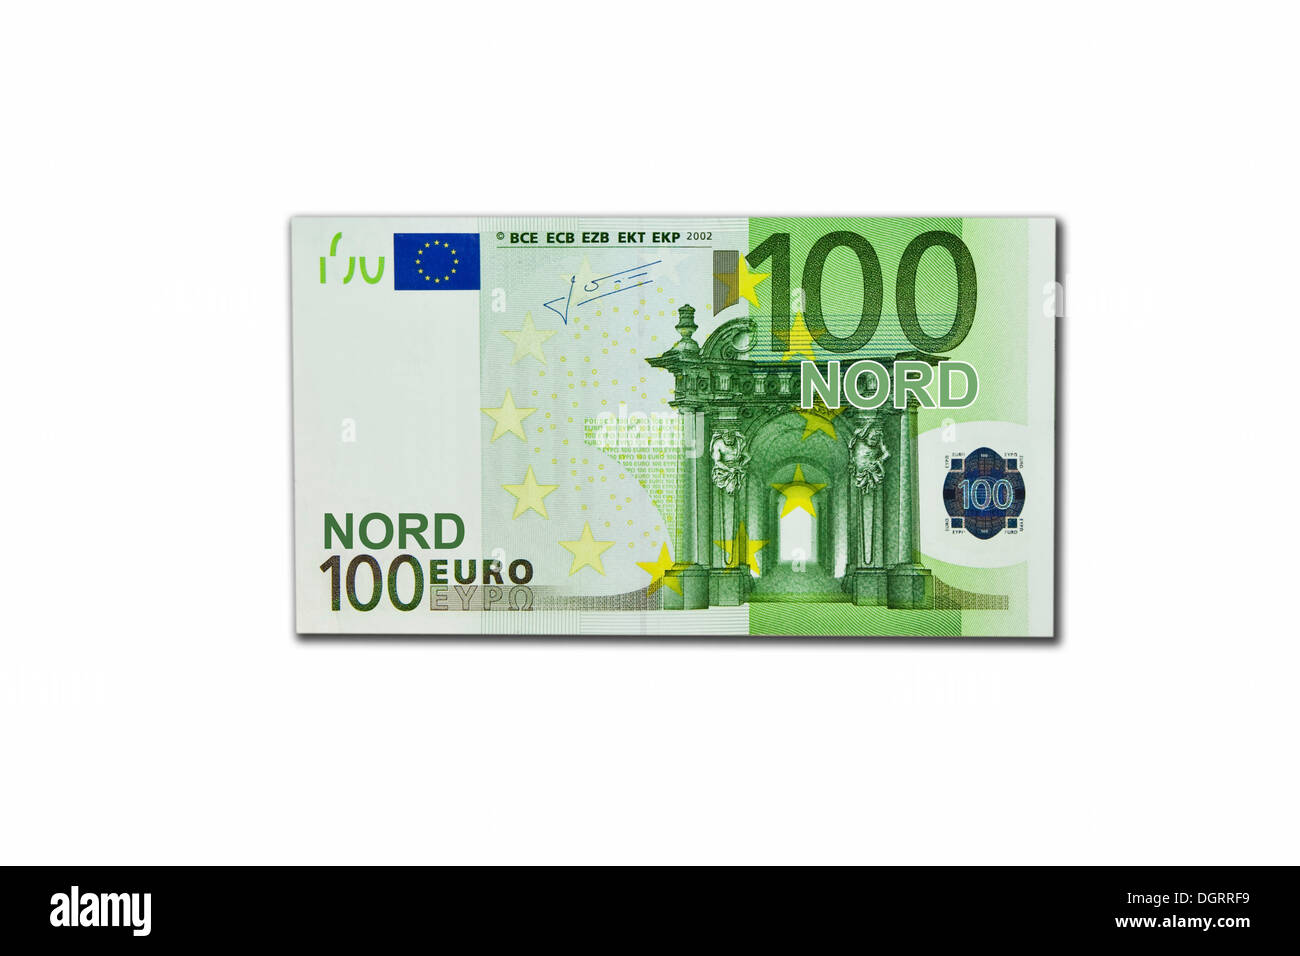 Symbolic icon, disintegration of the euro and the introduction of the new northern euro currency, 100 Nord-Euro Stock Photo